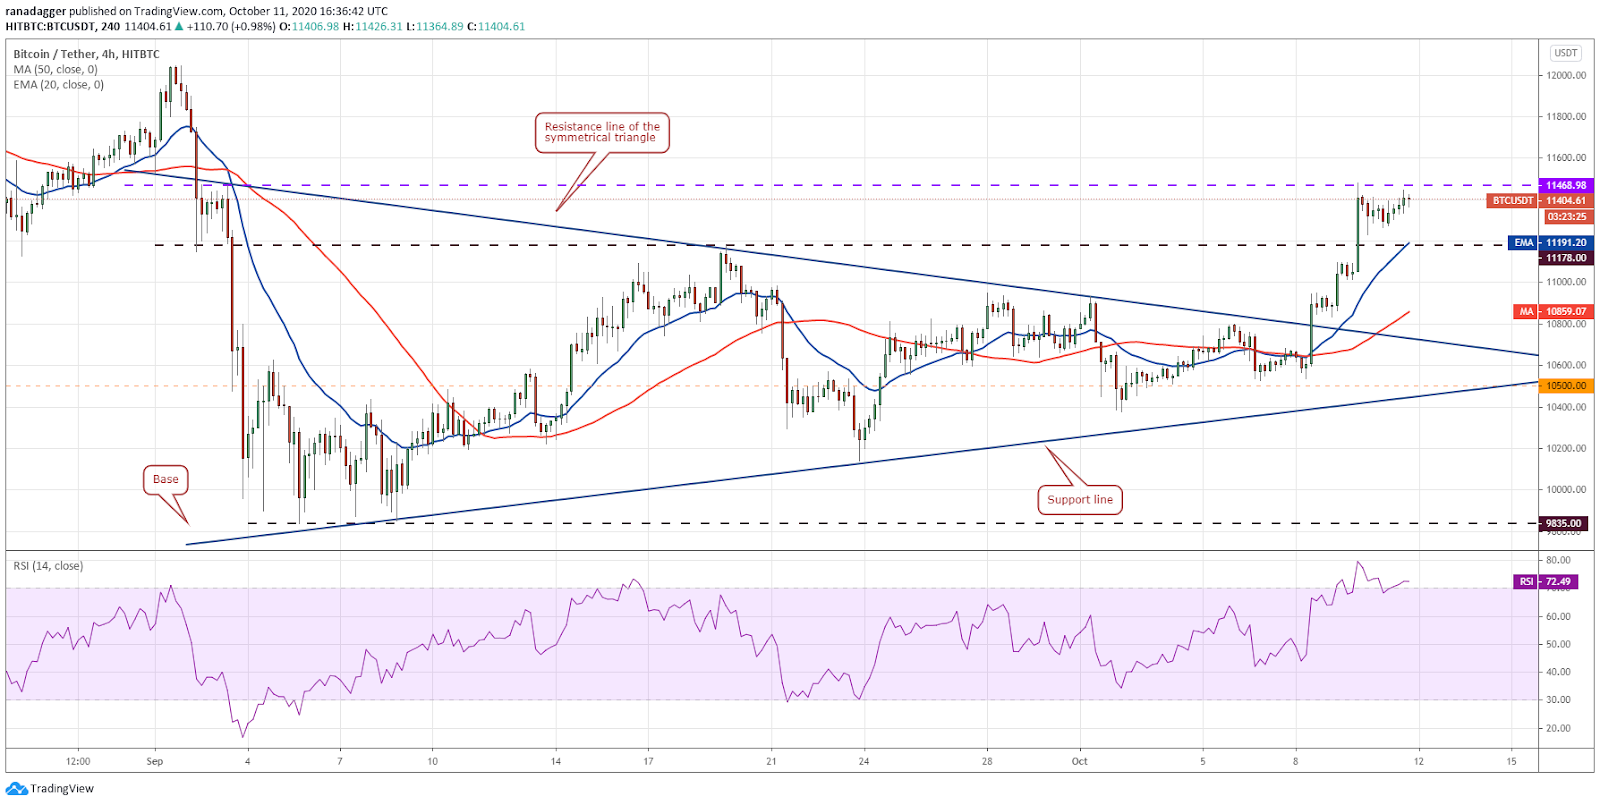 BTC / USD 4 hour chart